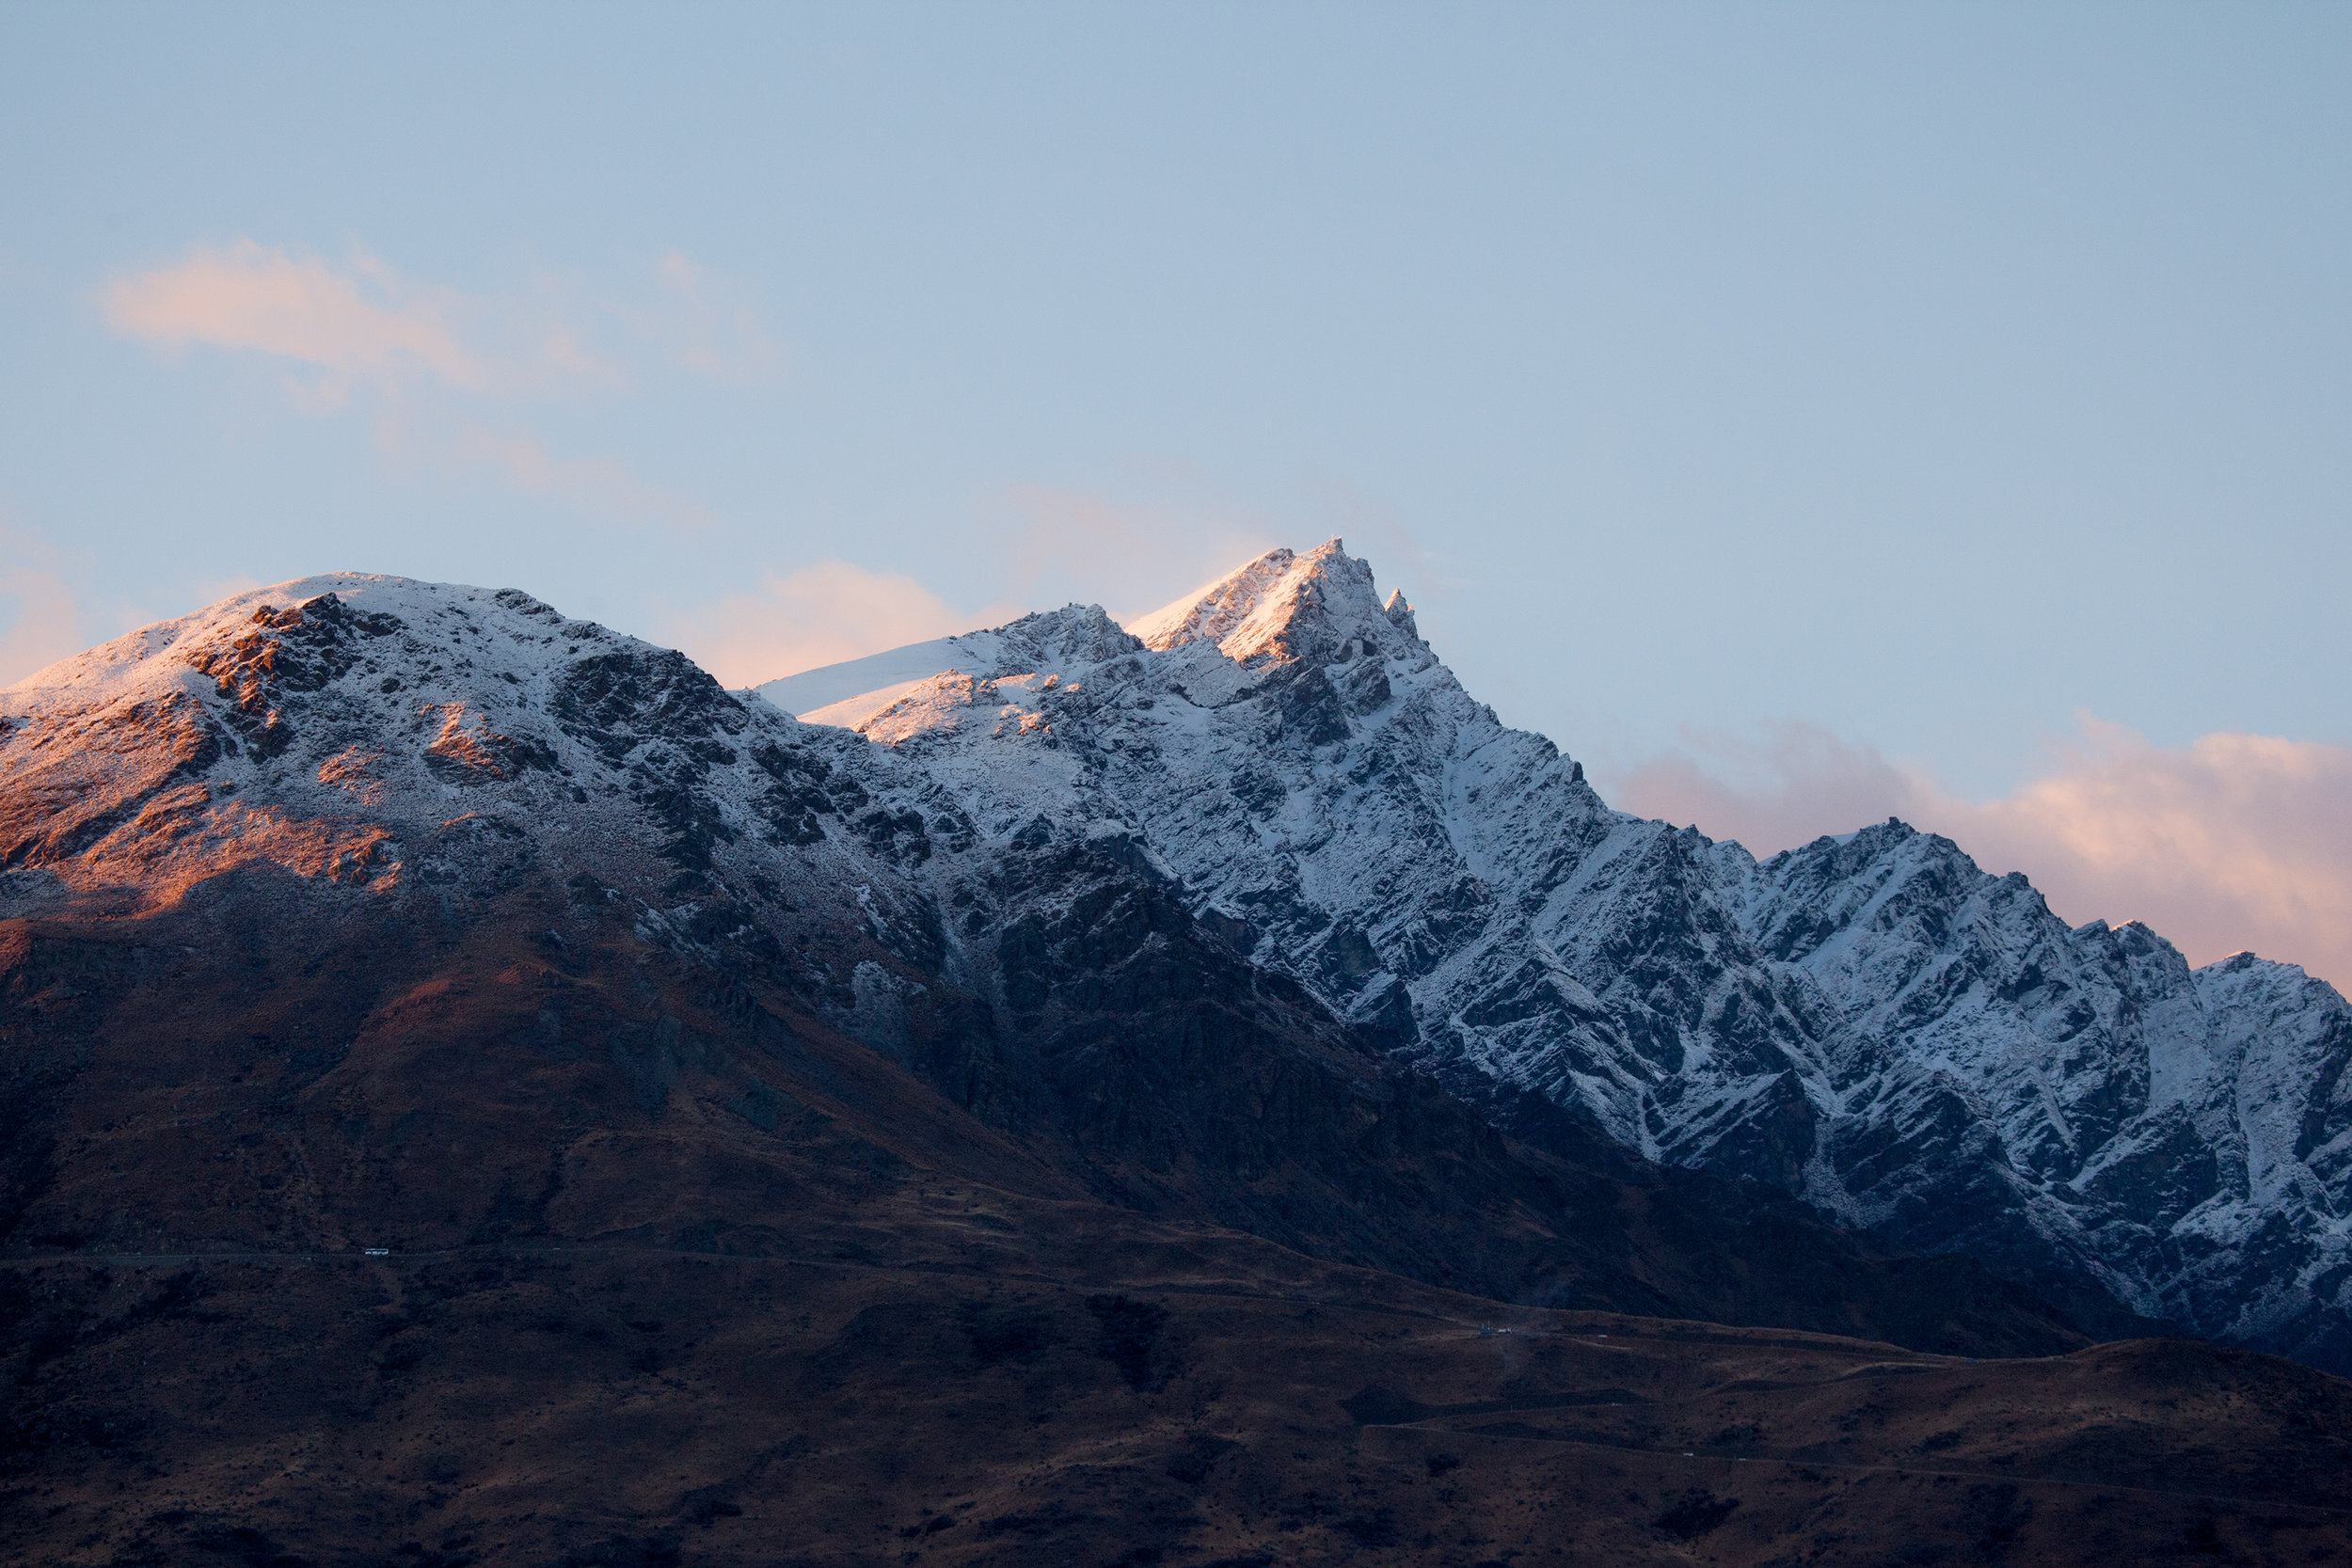 AlanToth_Remarkables_NZAug2017.jpg